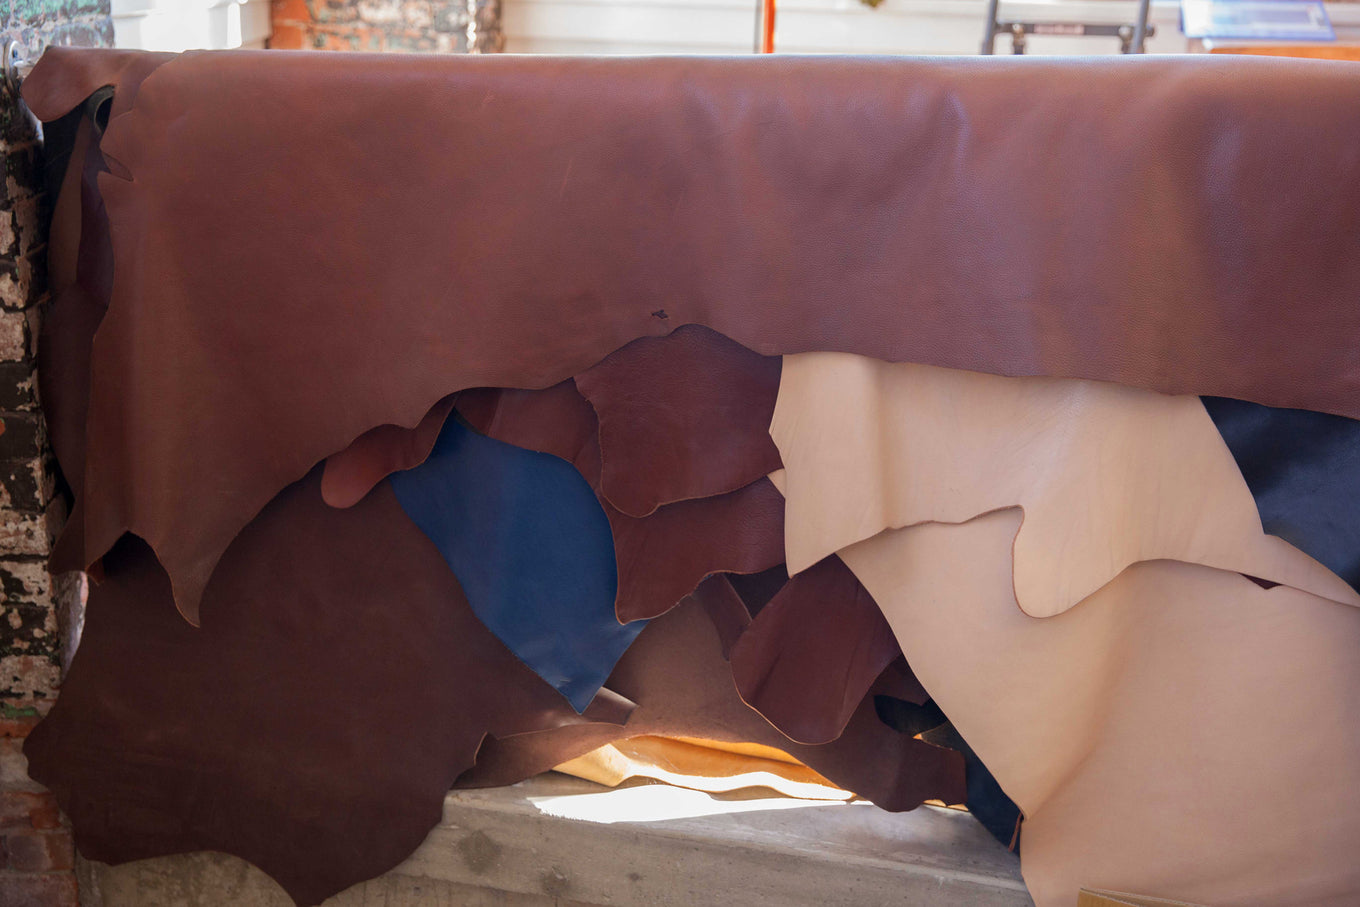 Full-grain leather hides at the Lotuff Leather design studio